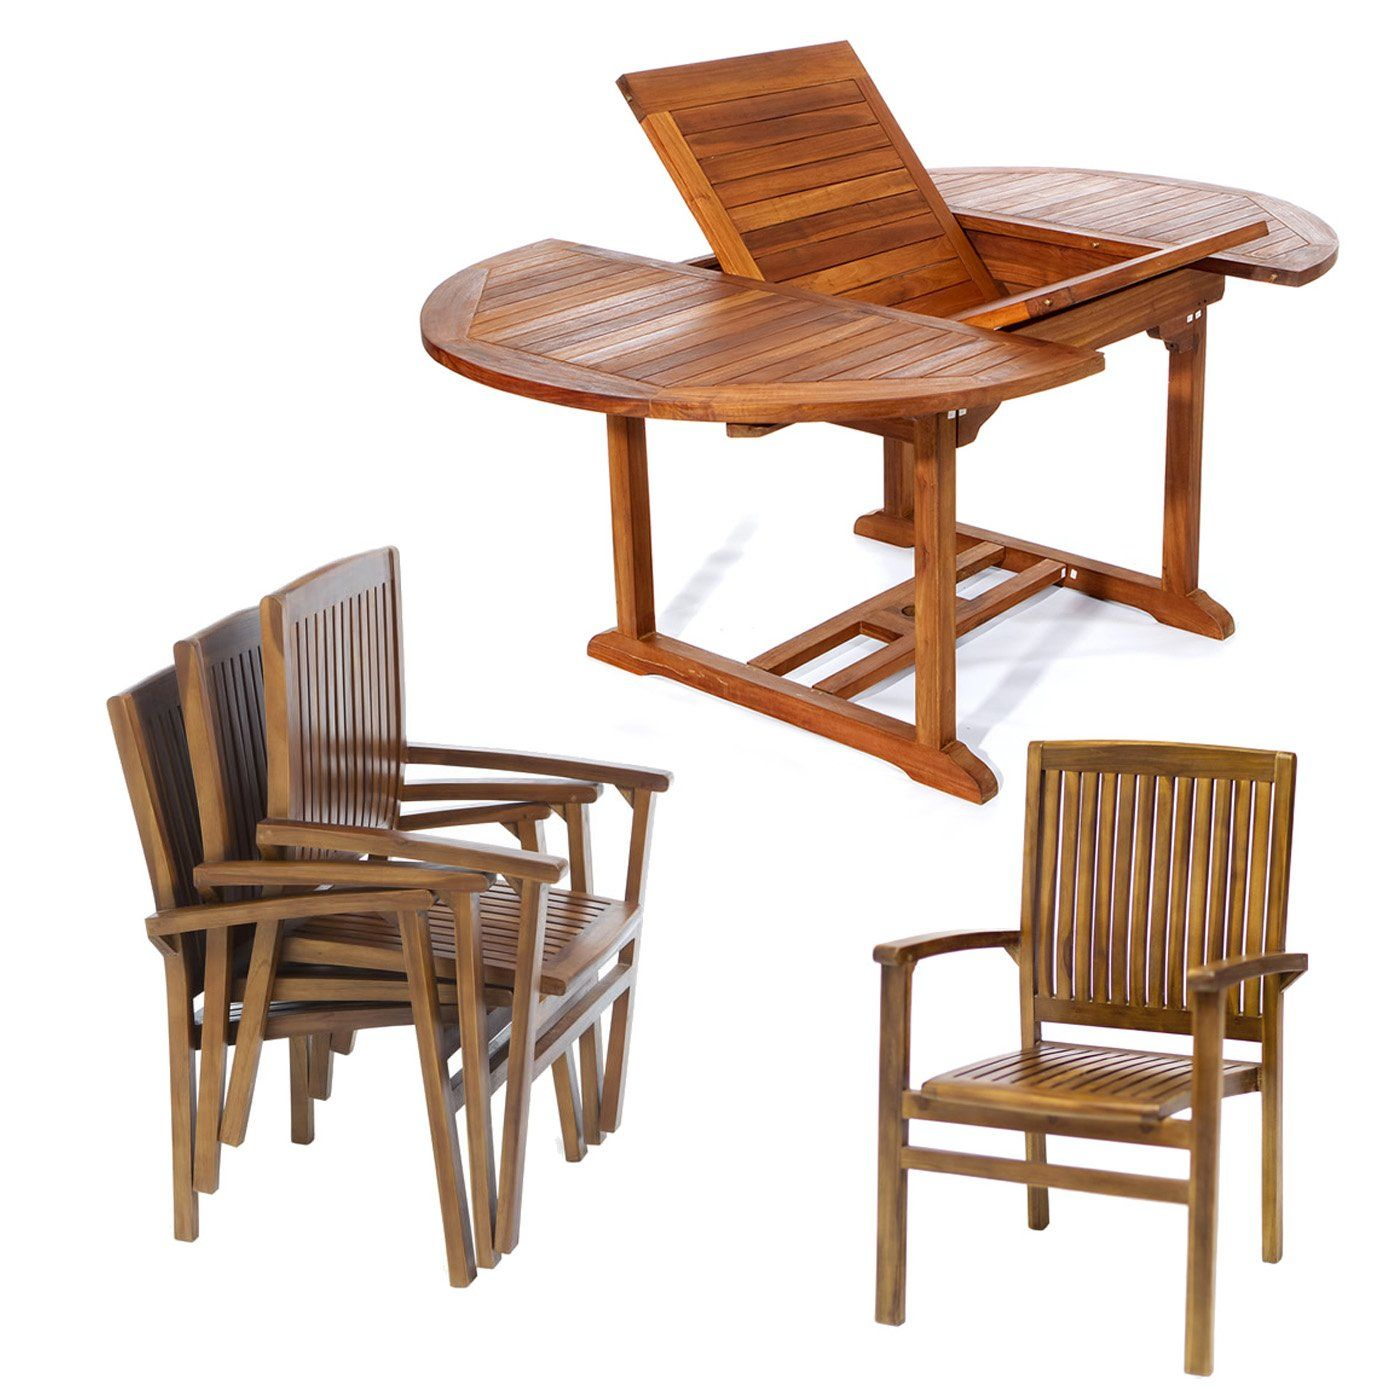 All Things Cedar Teak 5 Pc Oval Stacking Set | Products | Pinterest ...